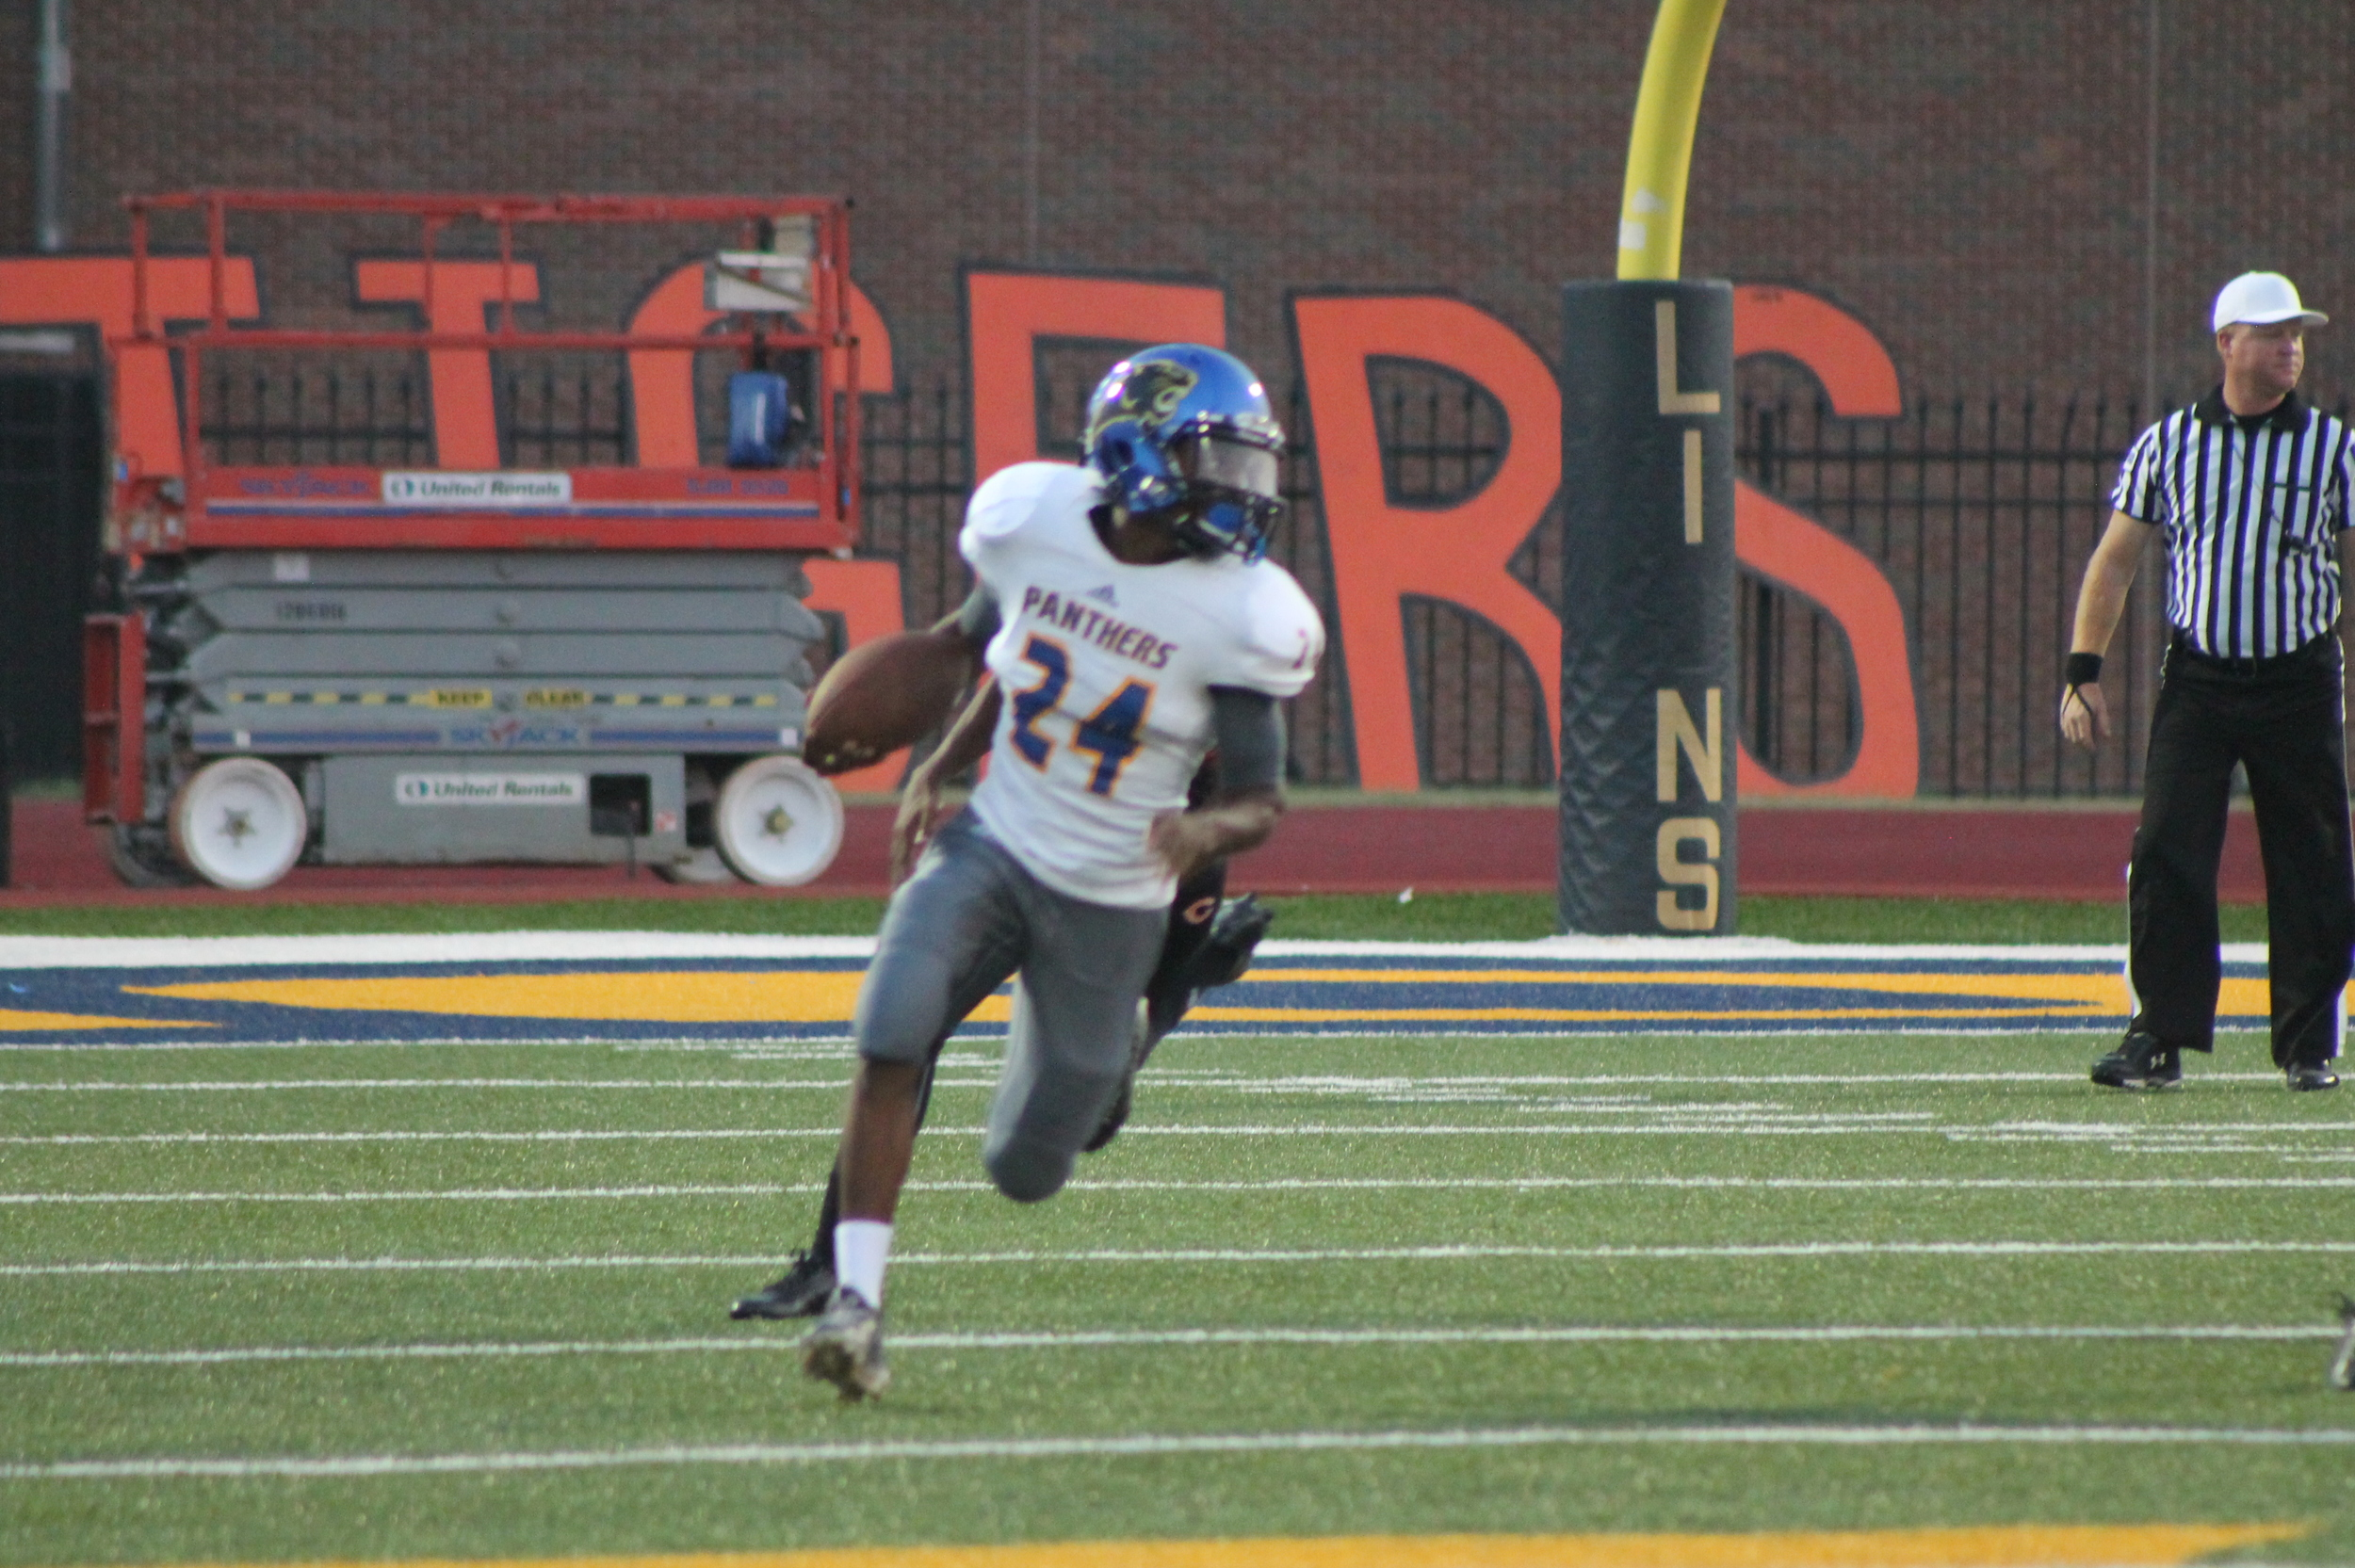 (Photo by Maddy Routon) Javon Franklin breaking free on an 80 yard touchdown pass play.